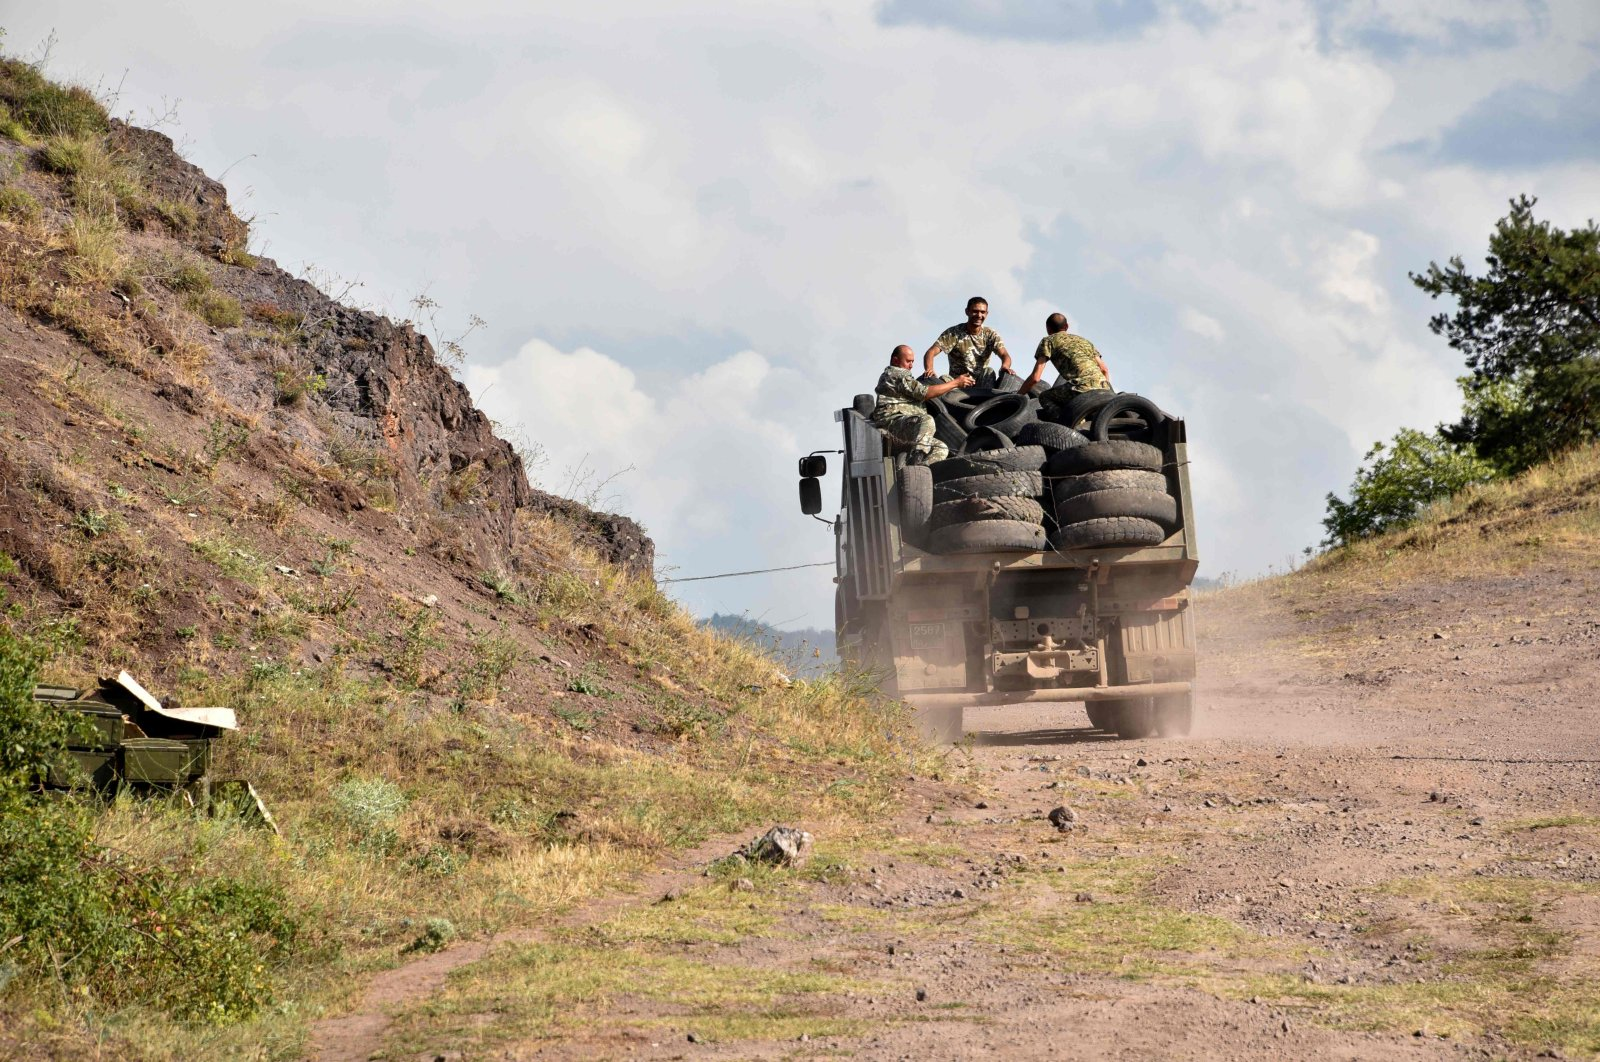 Armenian servicemen transport used tyres in the back of a truck to fortify their positions on the Armenian-Azerbaijani border near the village of Movses on July 15, 2020. (AFP File Photo)